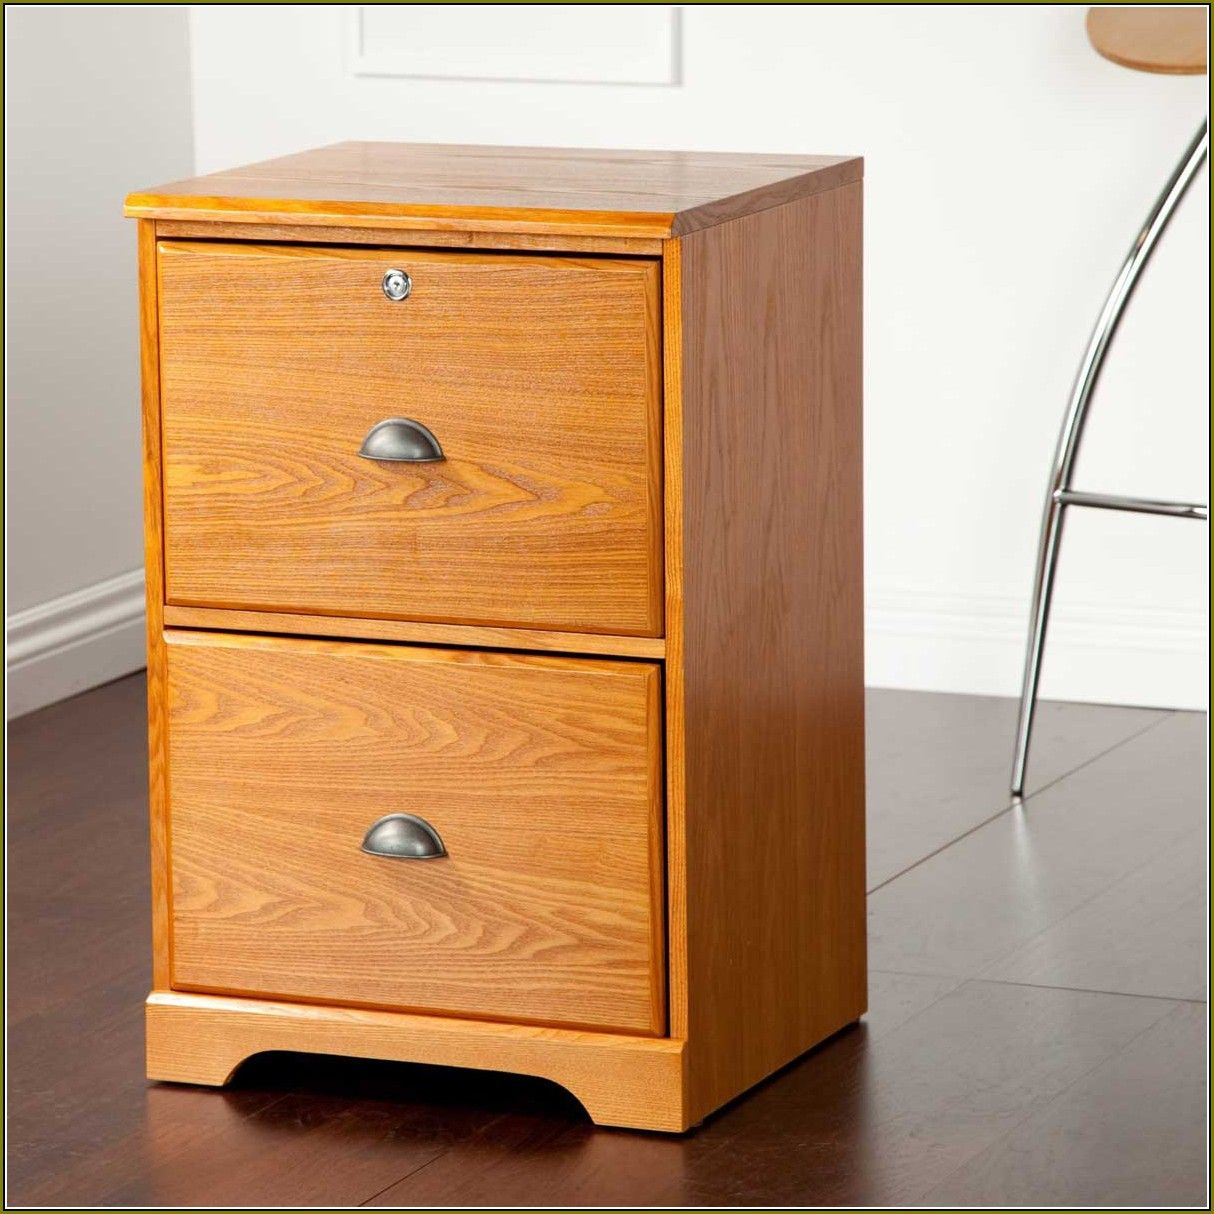 20 2 Drawer Wooden Filing Cabinets Kitchen Cabinet Inserts